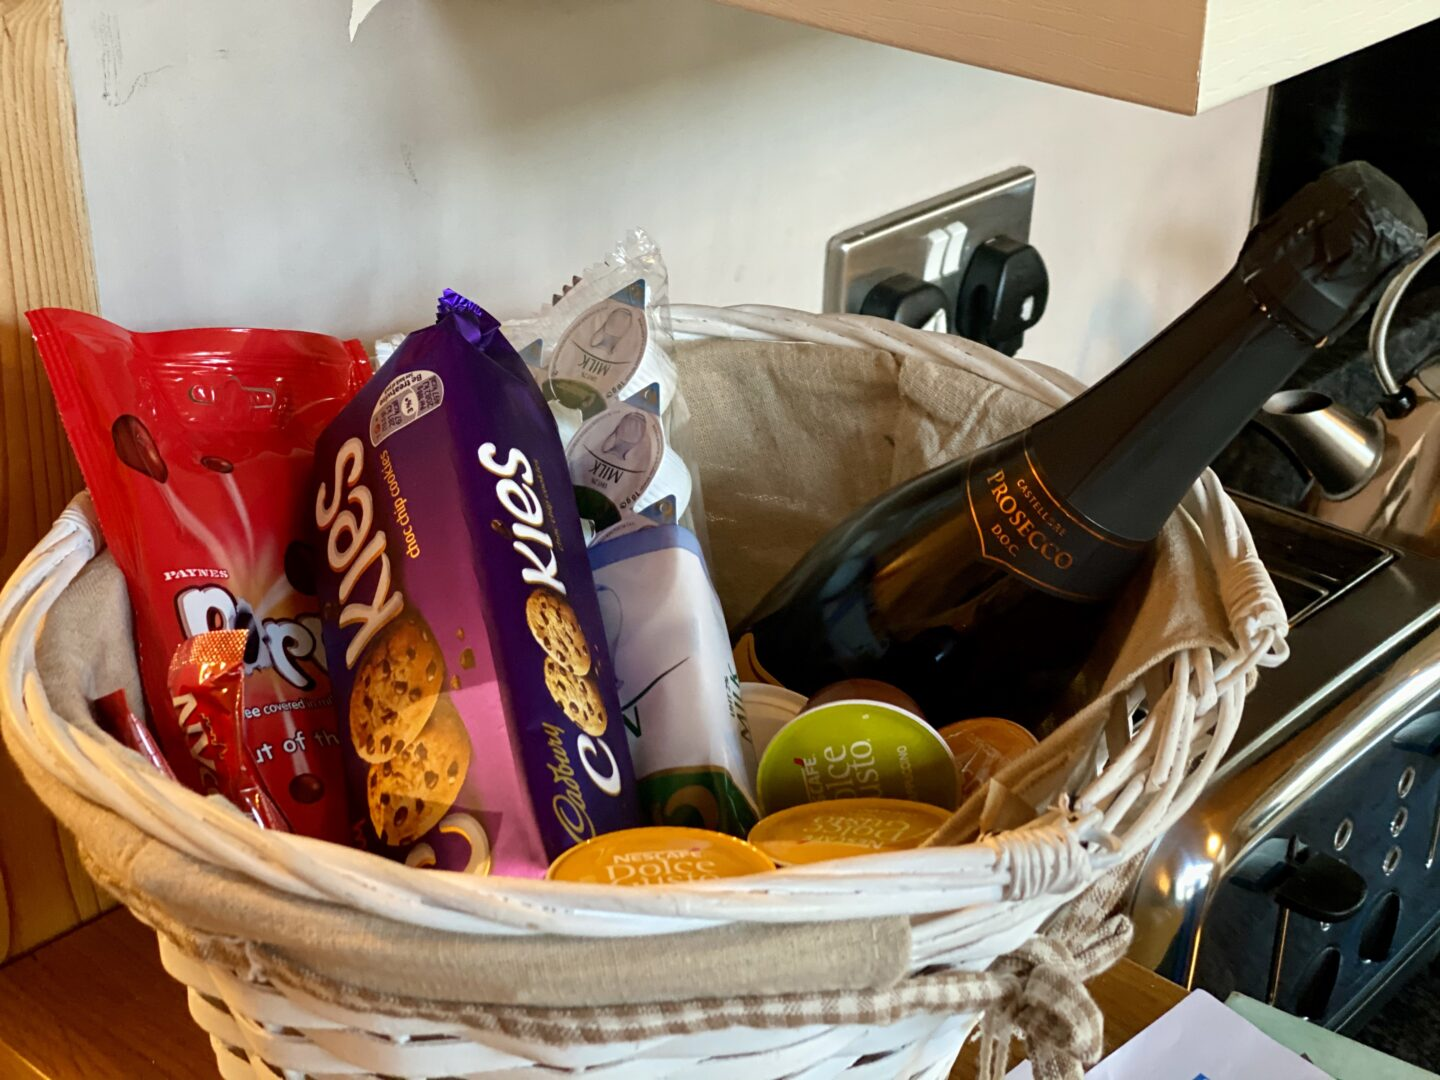 Welcome basket at the Snug with cookies, chocolate, prosecco and teas, coffees etc